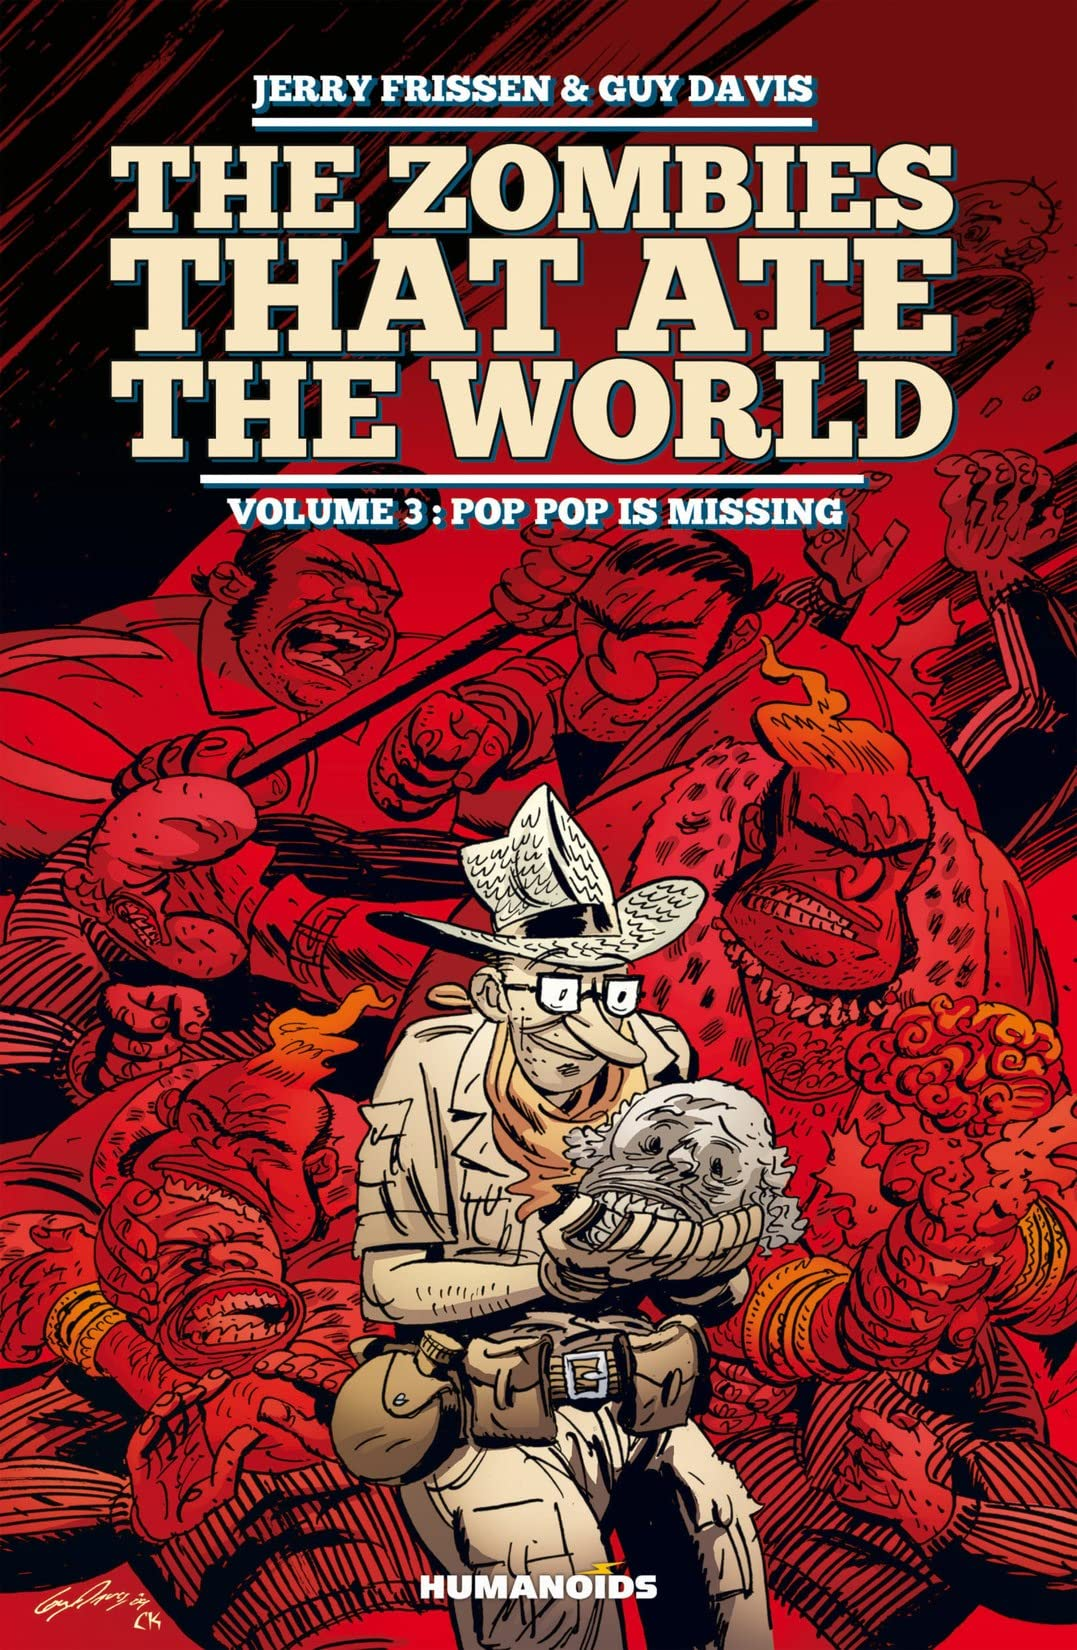 The Zombies that Ate the World Vol. 3: Pop Pop is missing